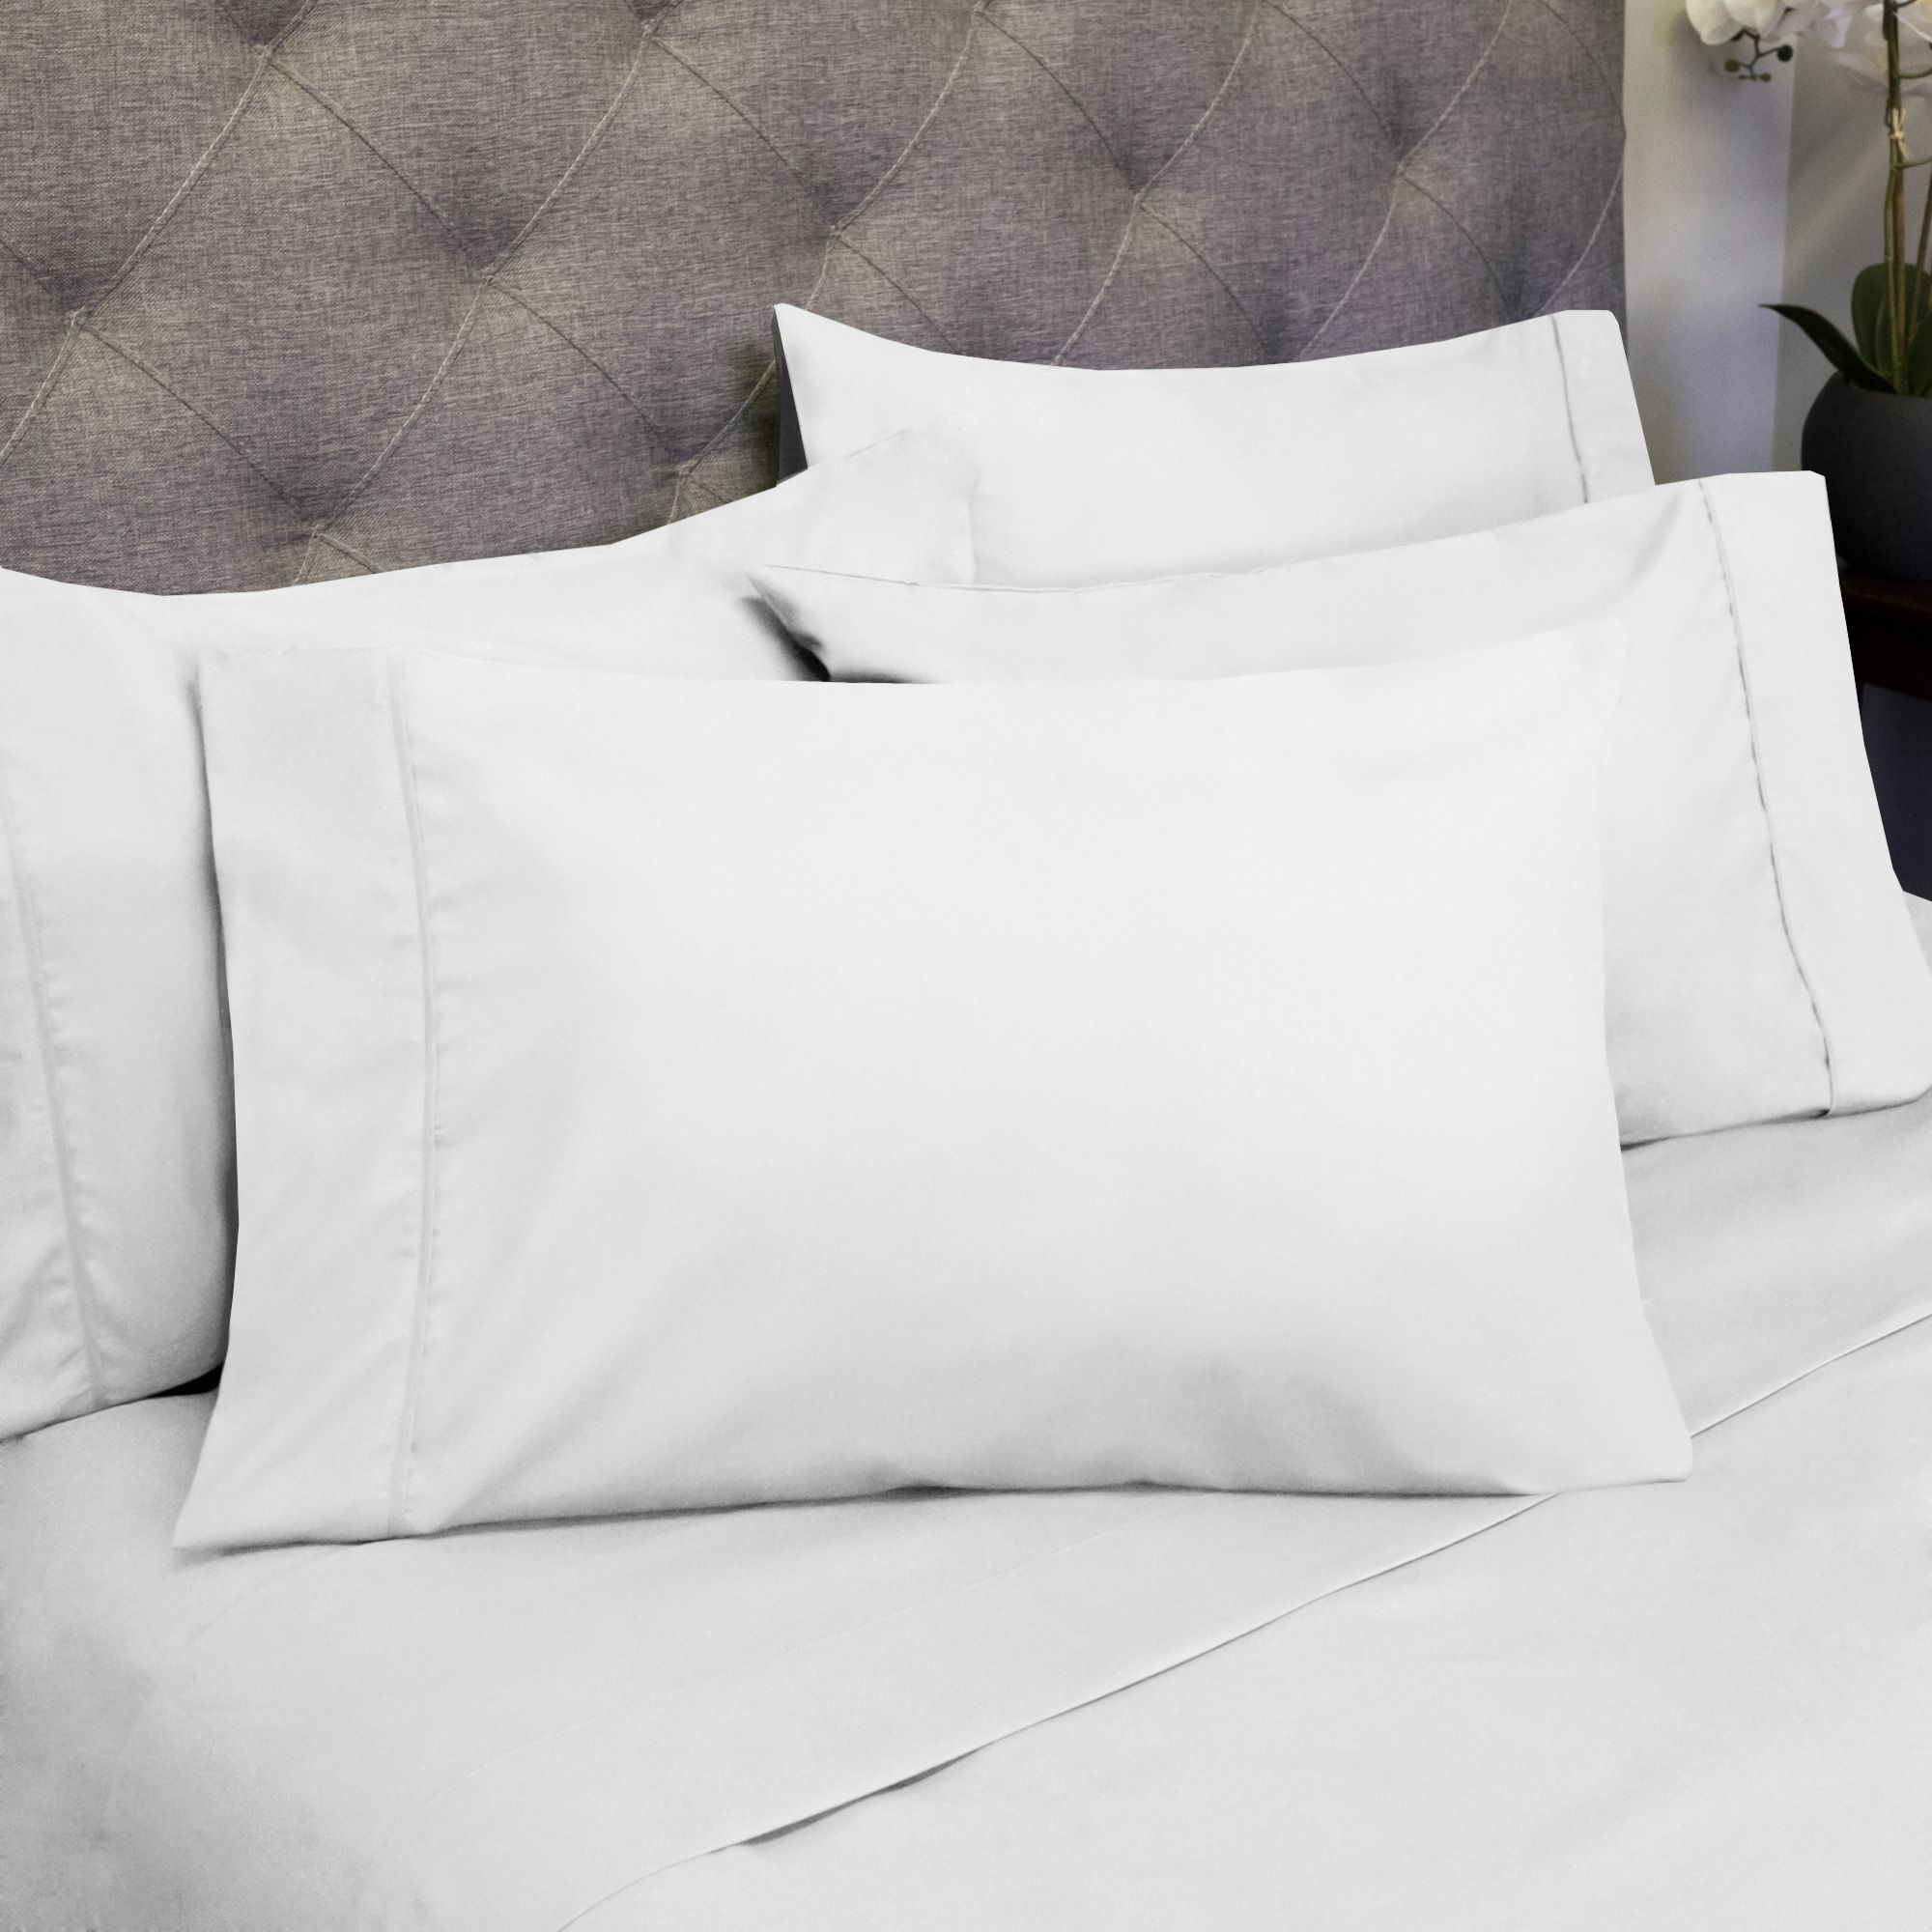 Home In 2020 Bed Sheet Sets Sweet Home Collection Sheet Sets